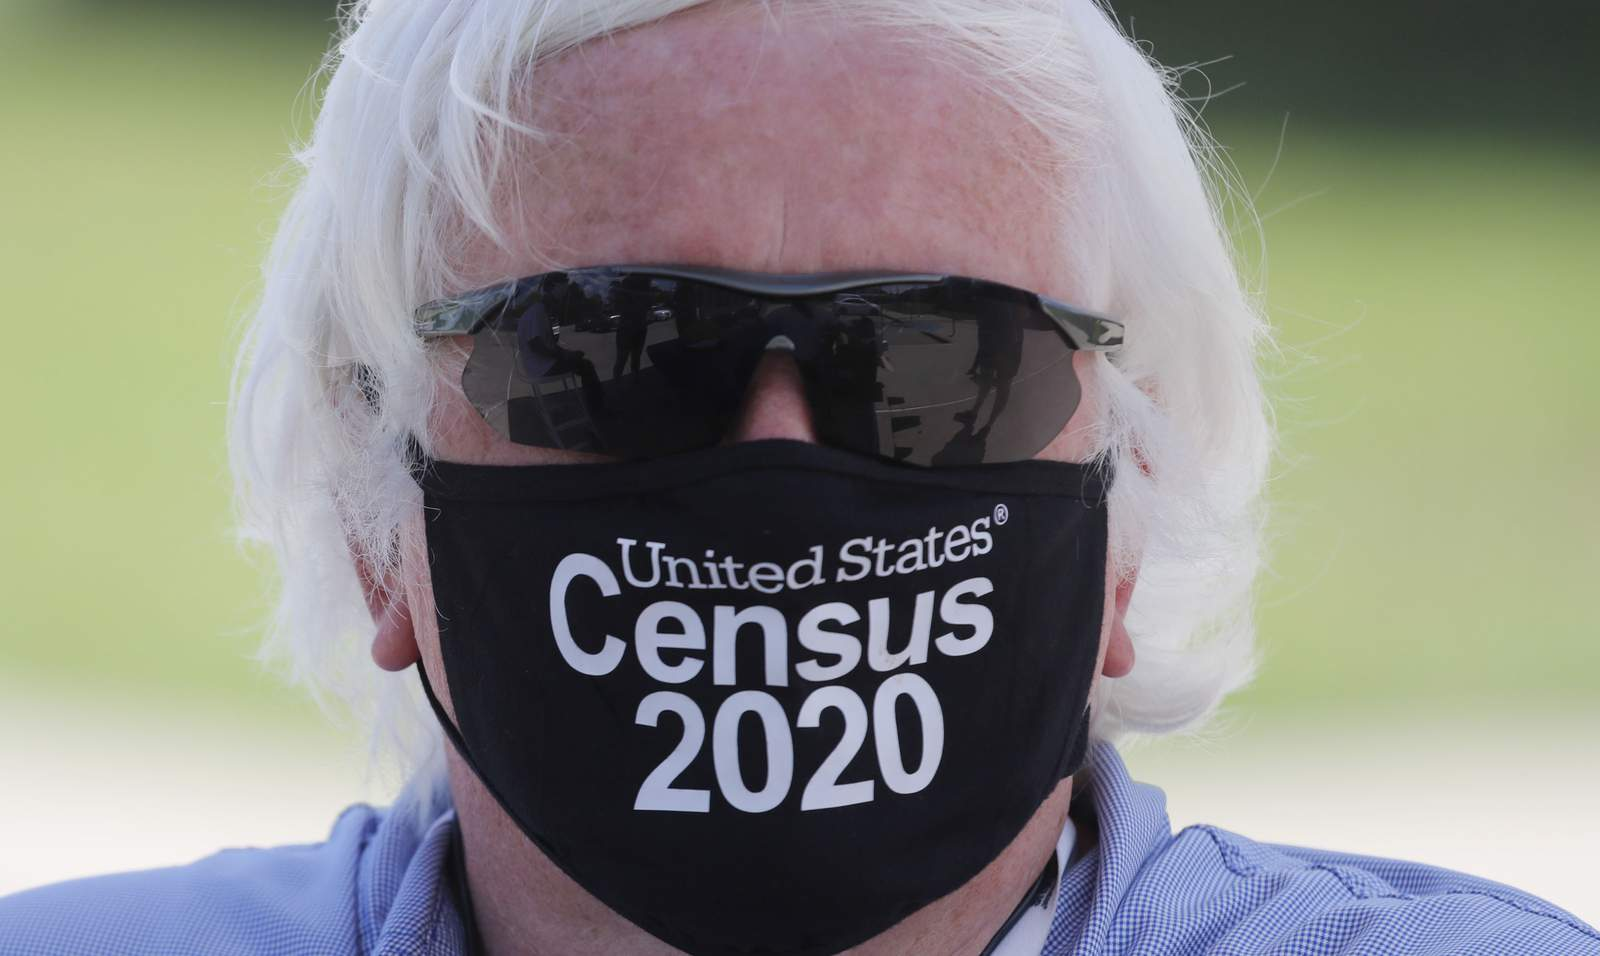 Judge says ending 2020 census on Oct. 5 may violate order